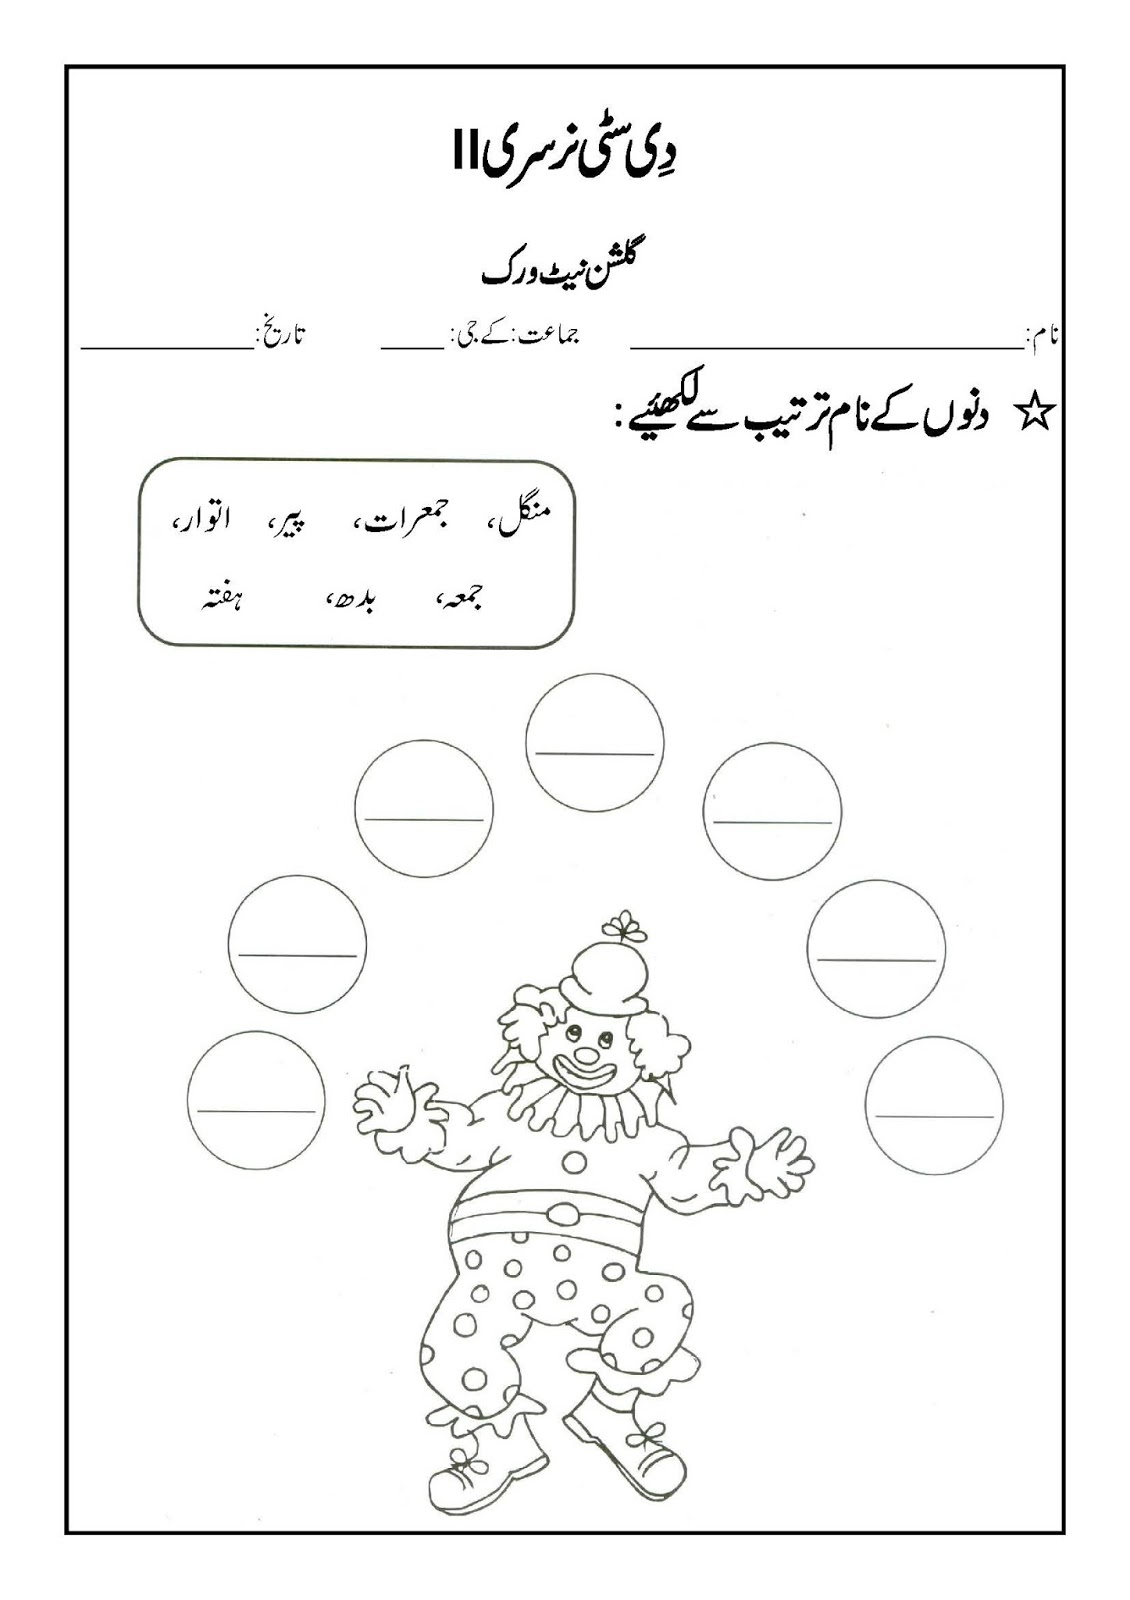 Sr Gulshan The City Nursery Ii Urdu Worksheet